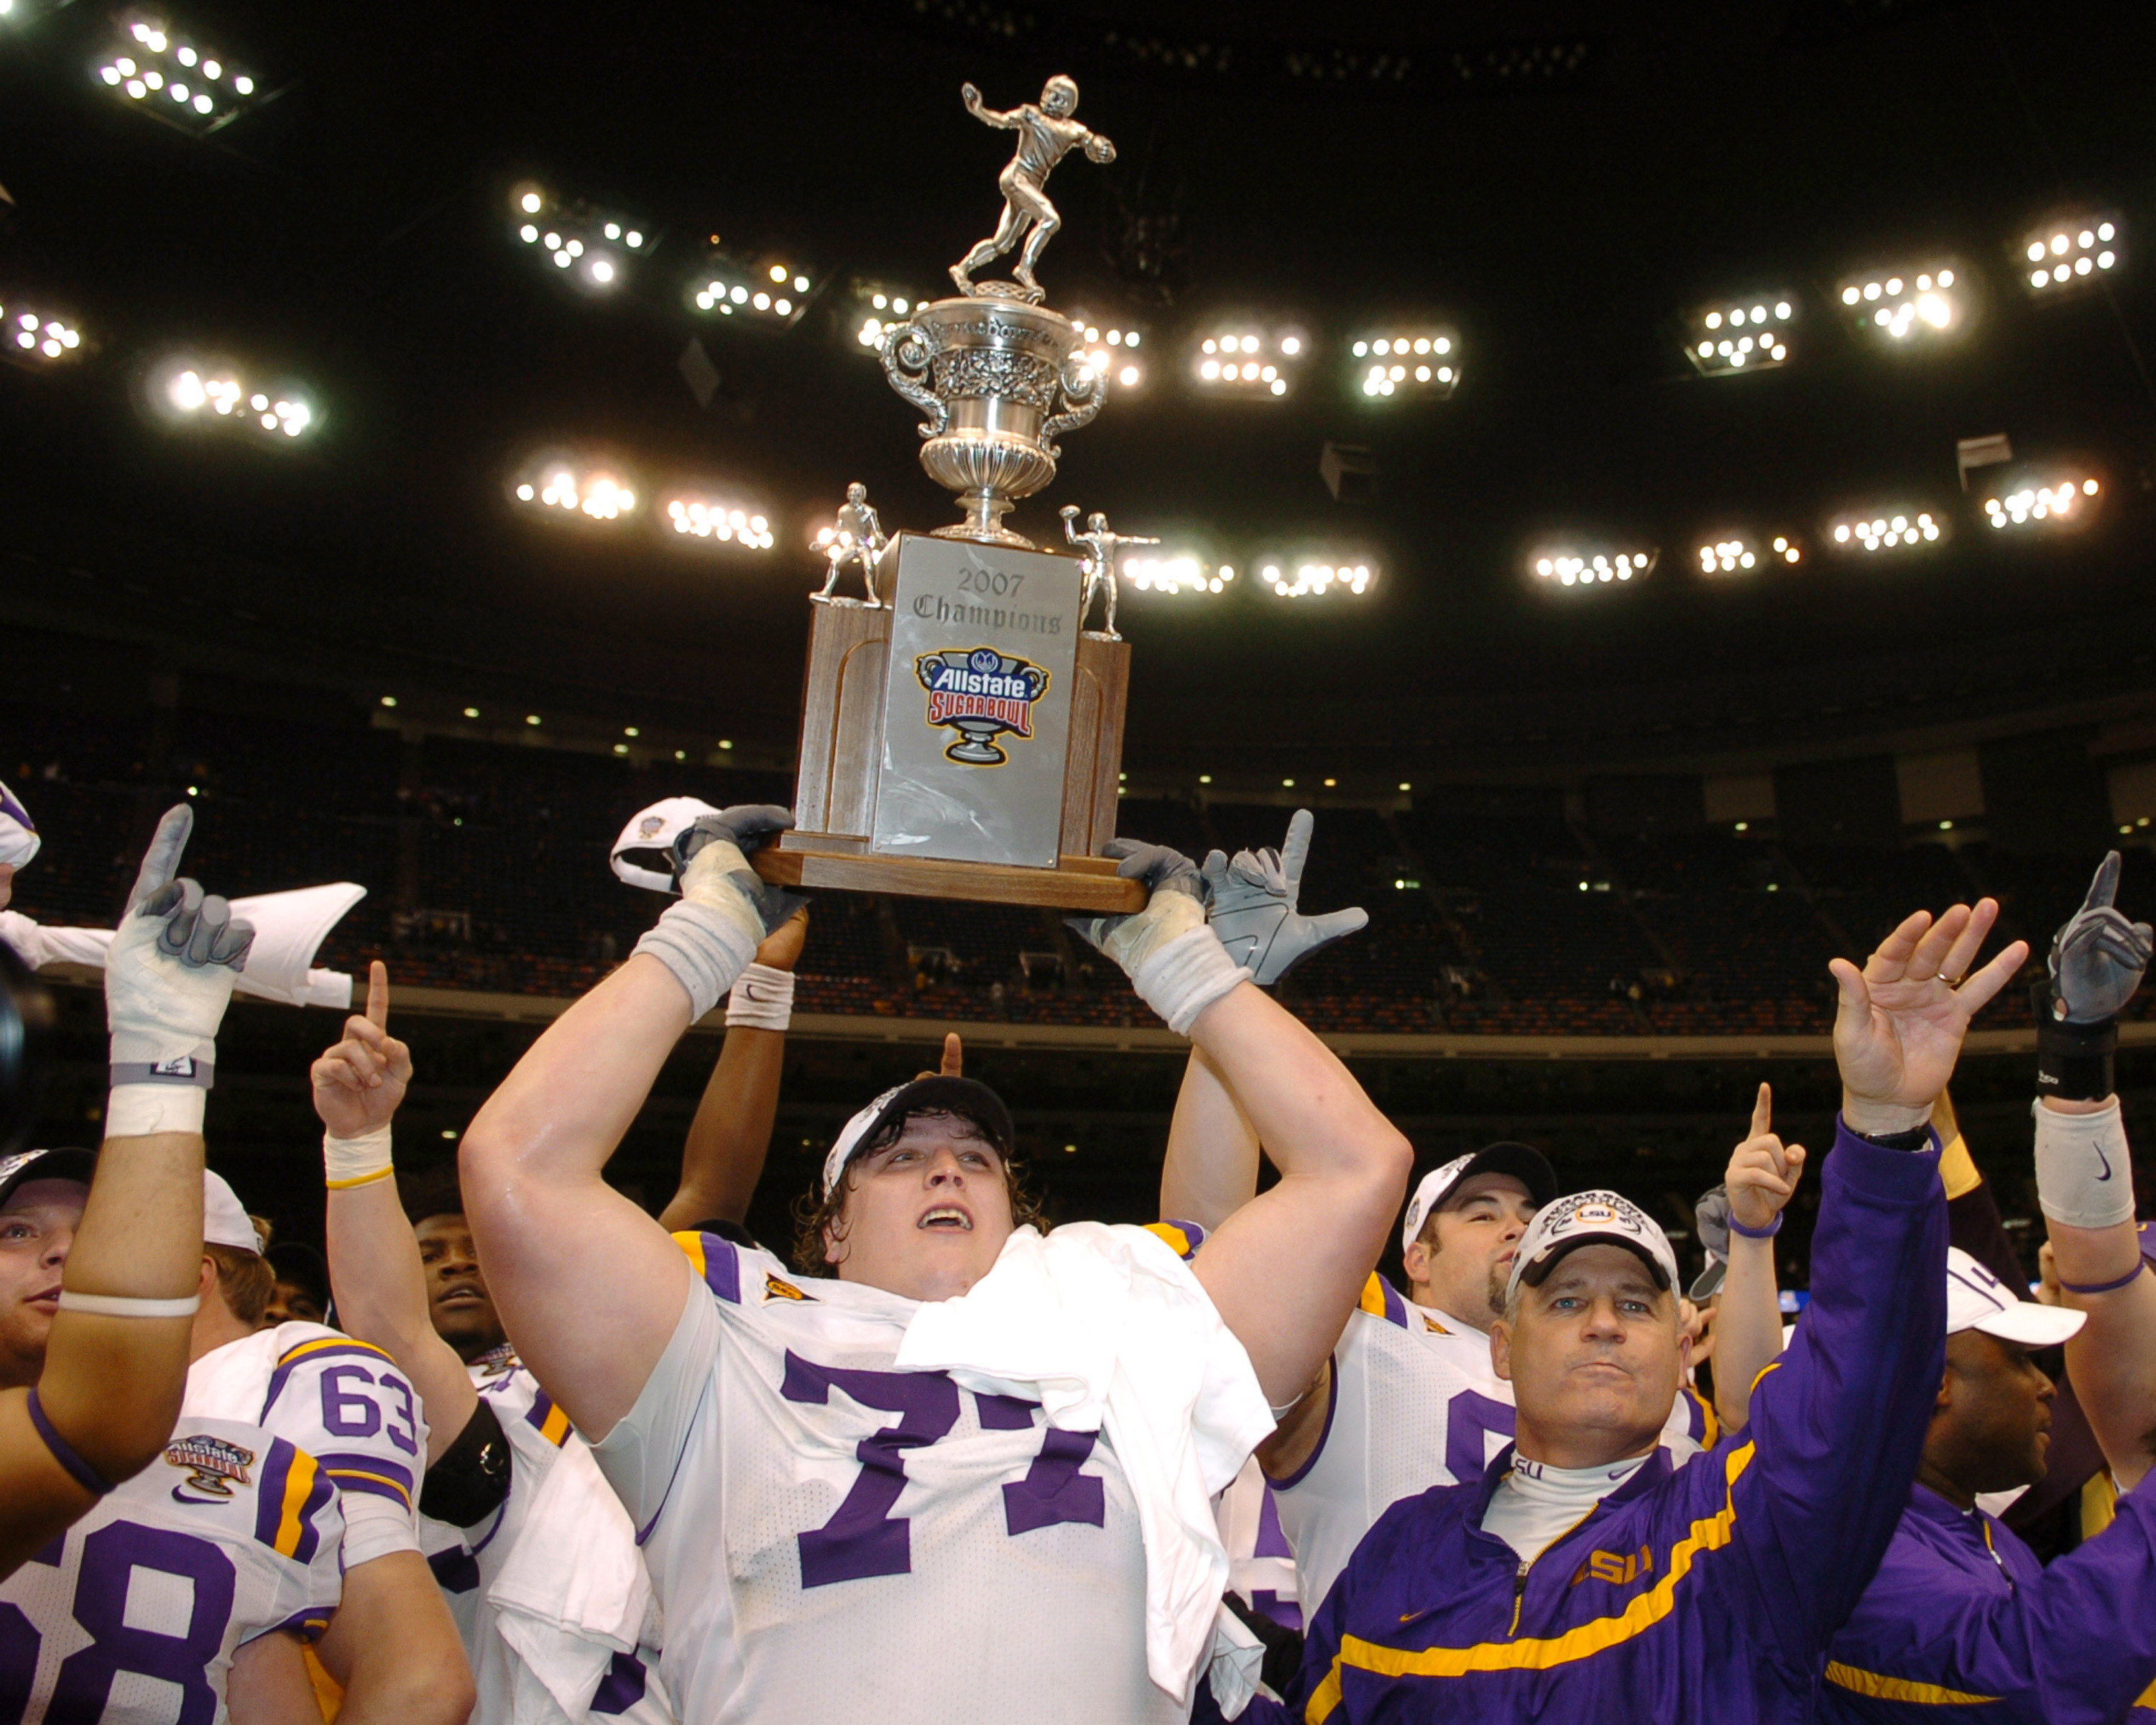 LSU coach Les Miles and offensive tackle Peter Dyakowski  with the championship trophy after a win against Notre Dame in the Allstate Sugar Bowl at the Superdome in New Orleans, Louisiana on January 3, 2007.  LSU won 41 - 14. (Photo by A. Messerschmidt/Ge